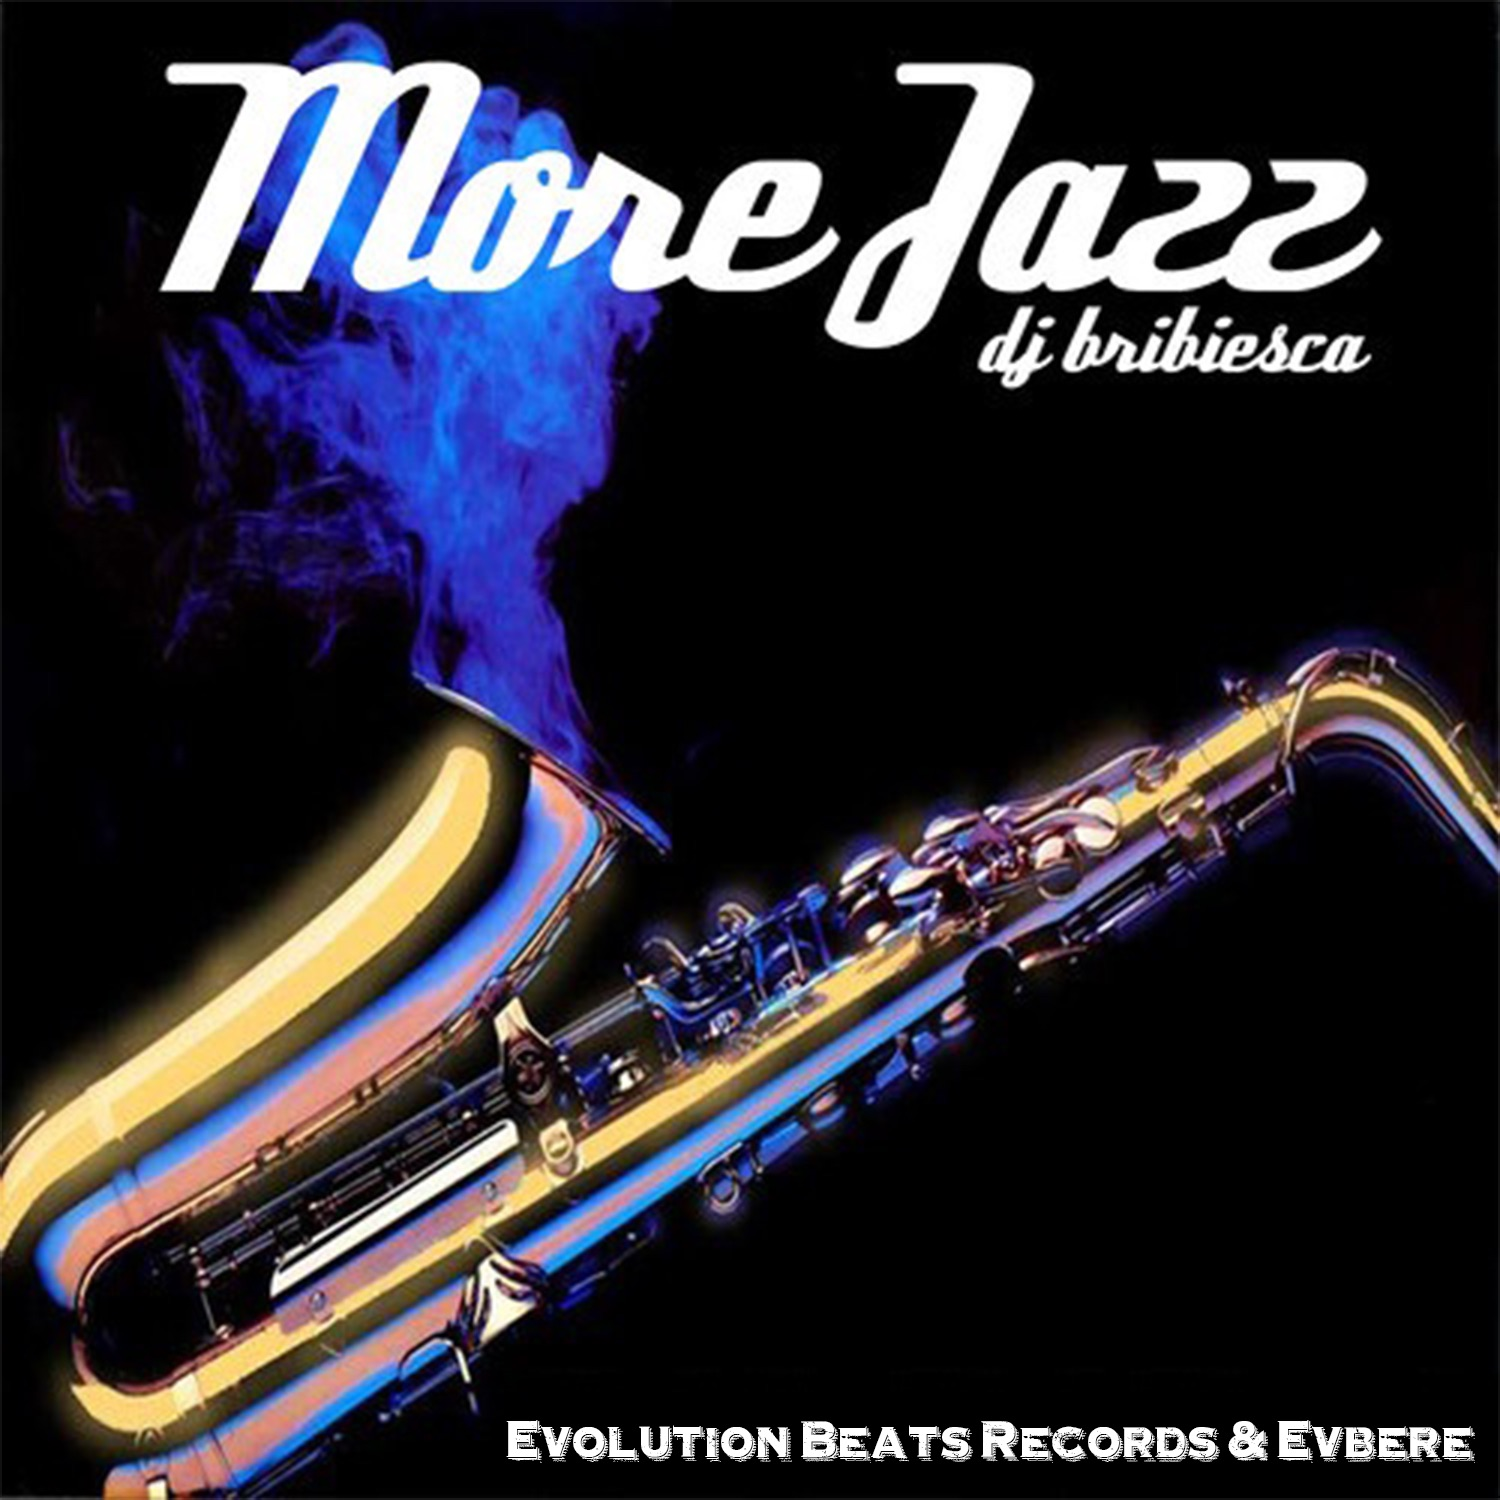 More Jazz - Single